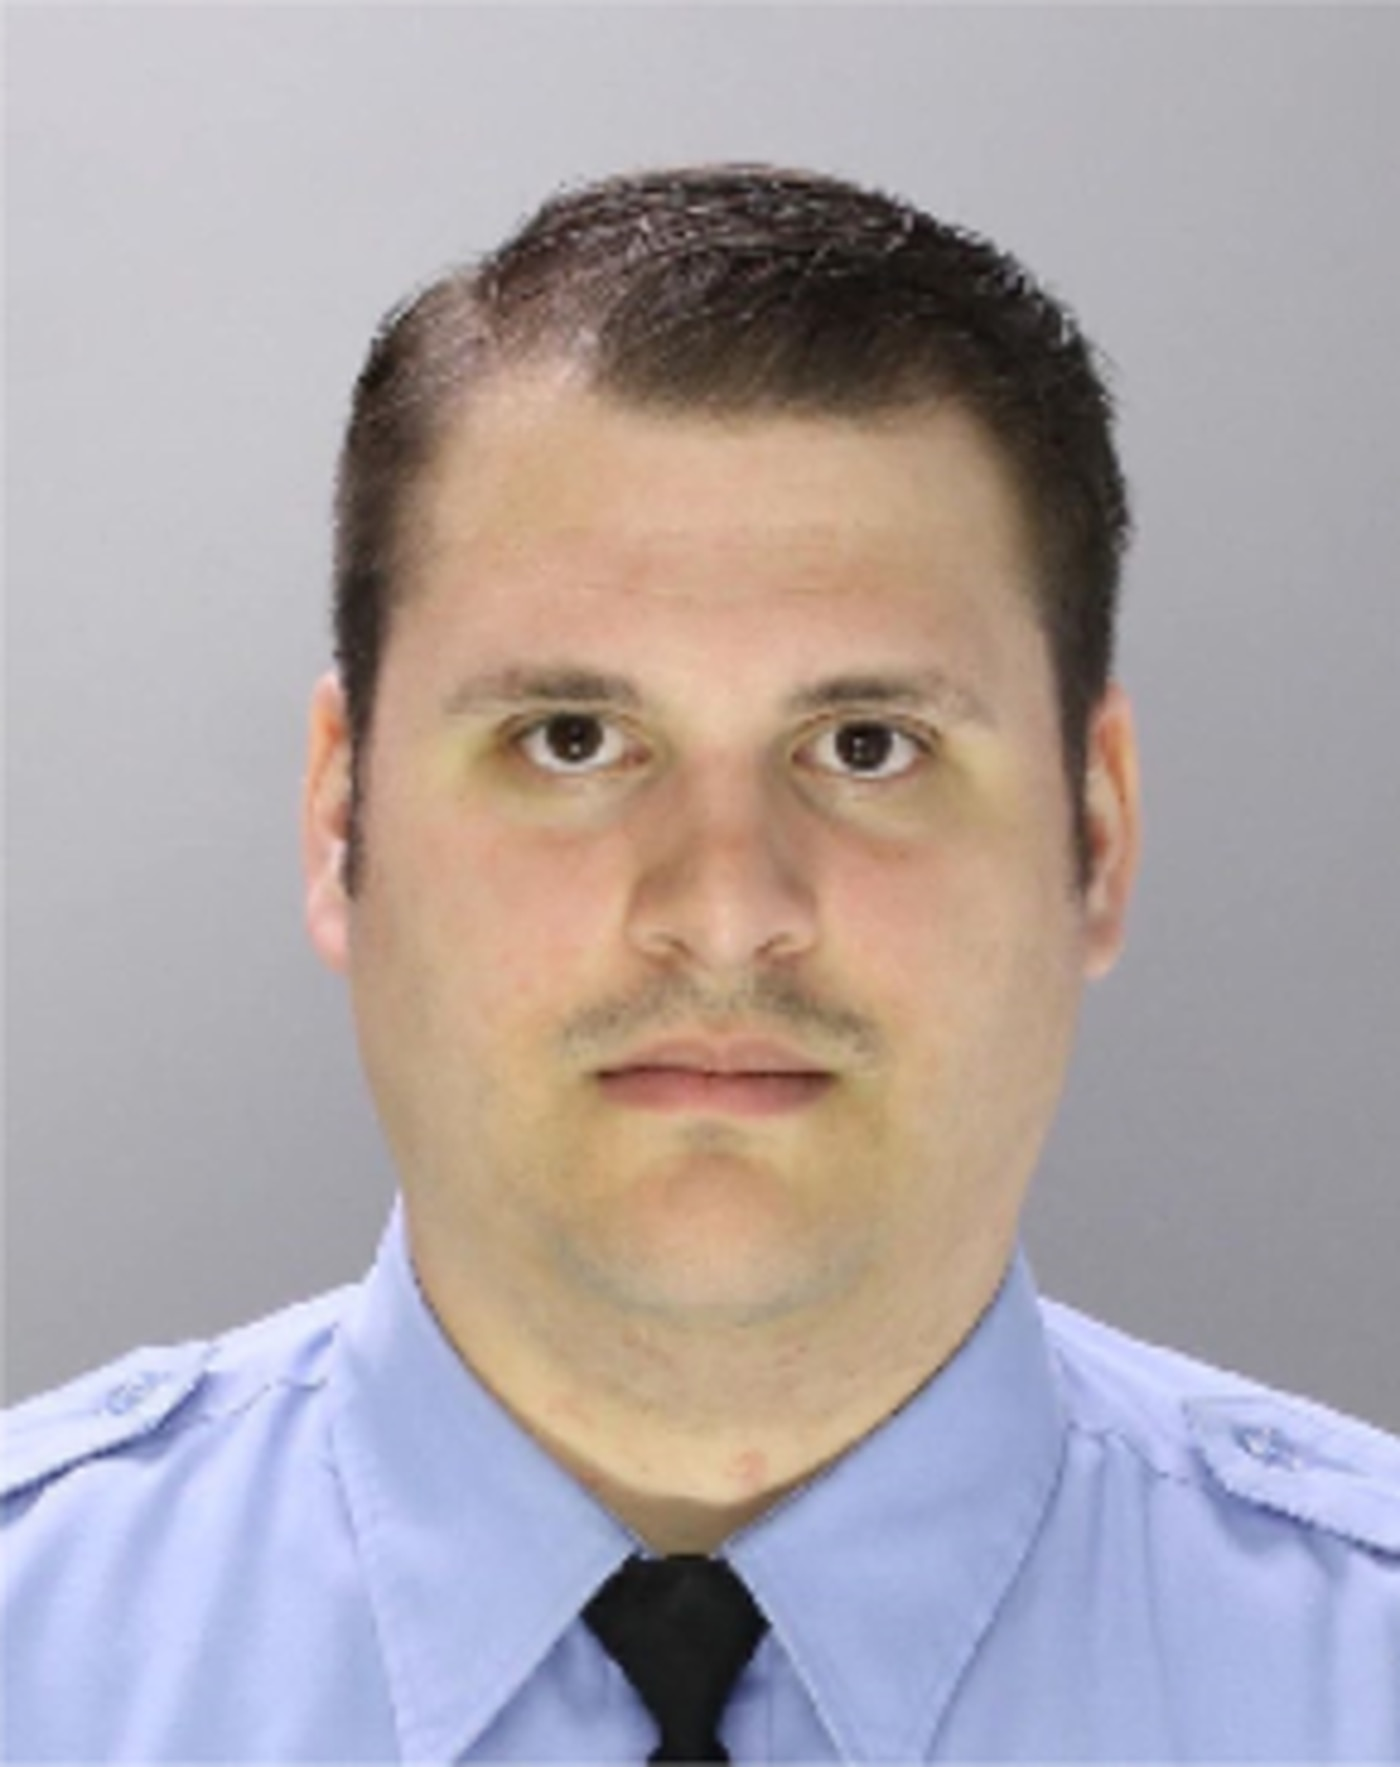 philly cop is fired for fatally shooting unarmed man